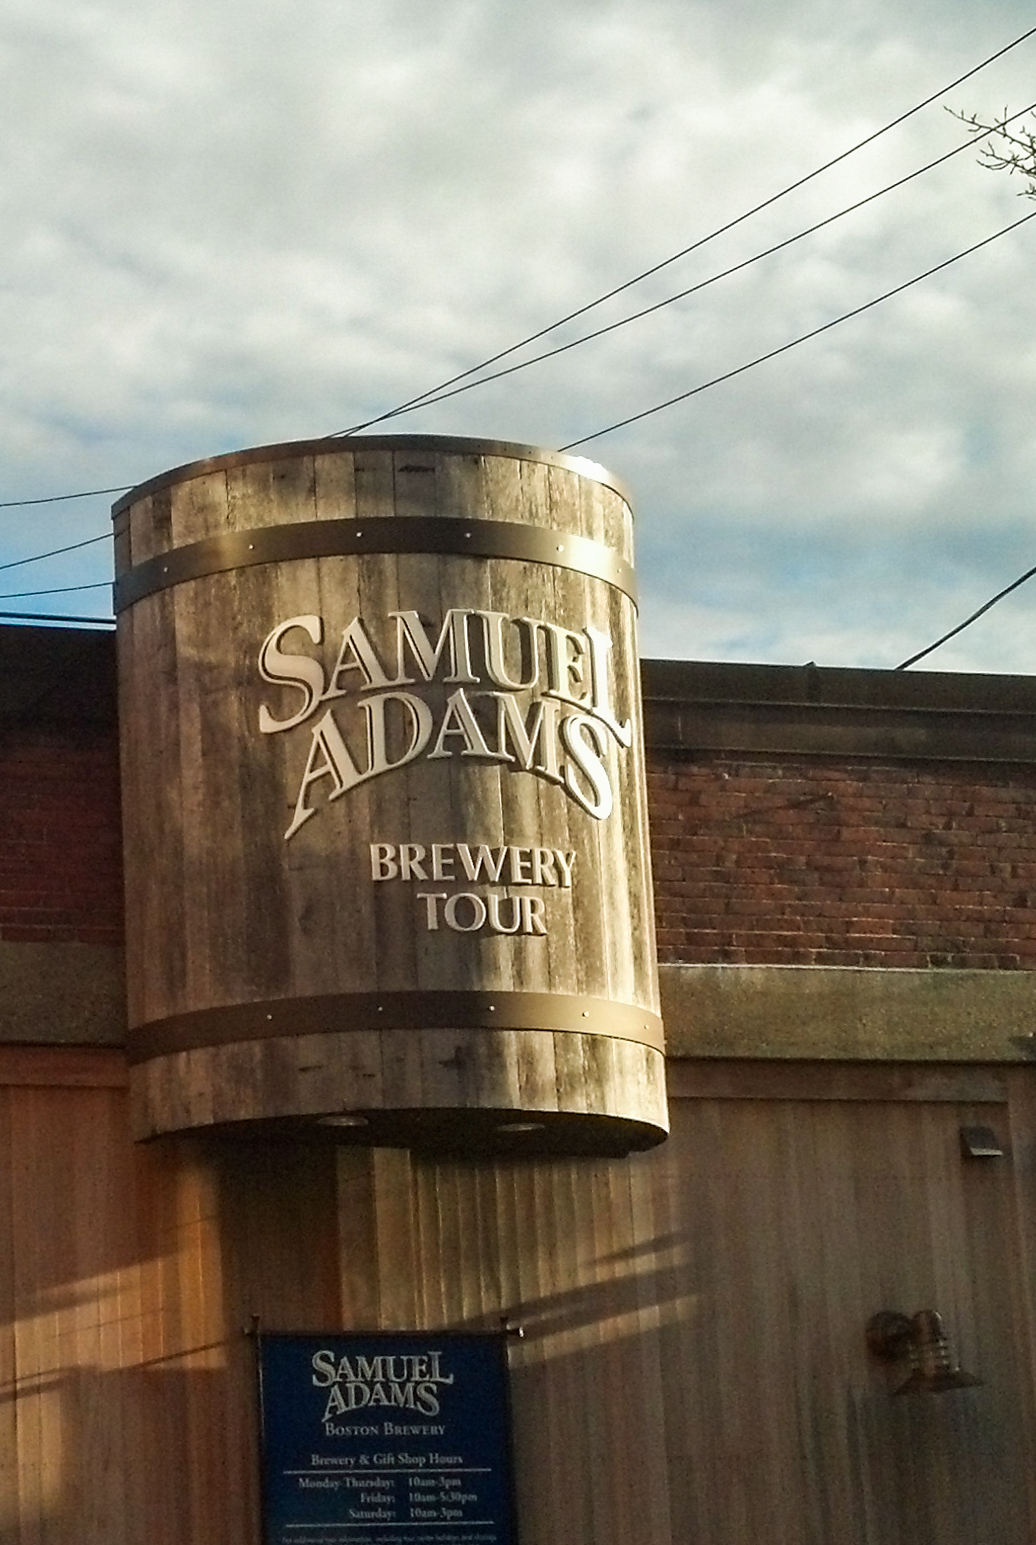 sam-adams-brewery-tour-exterior